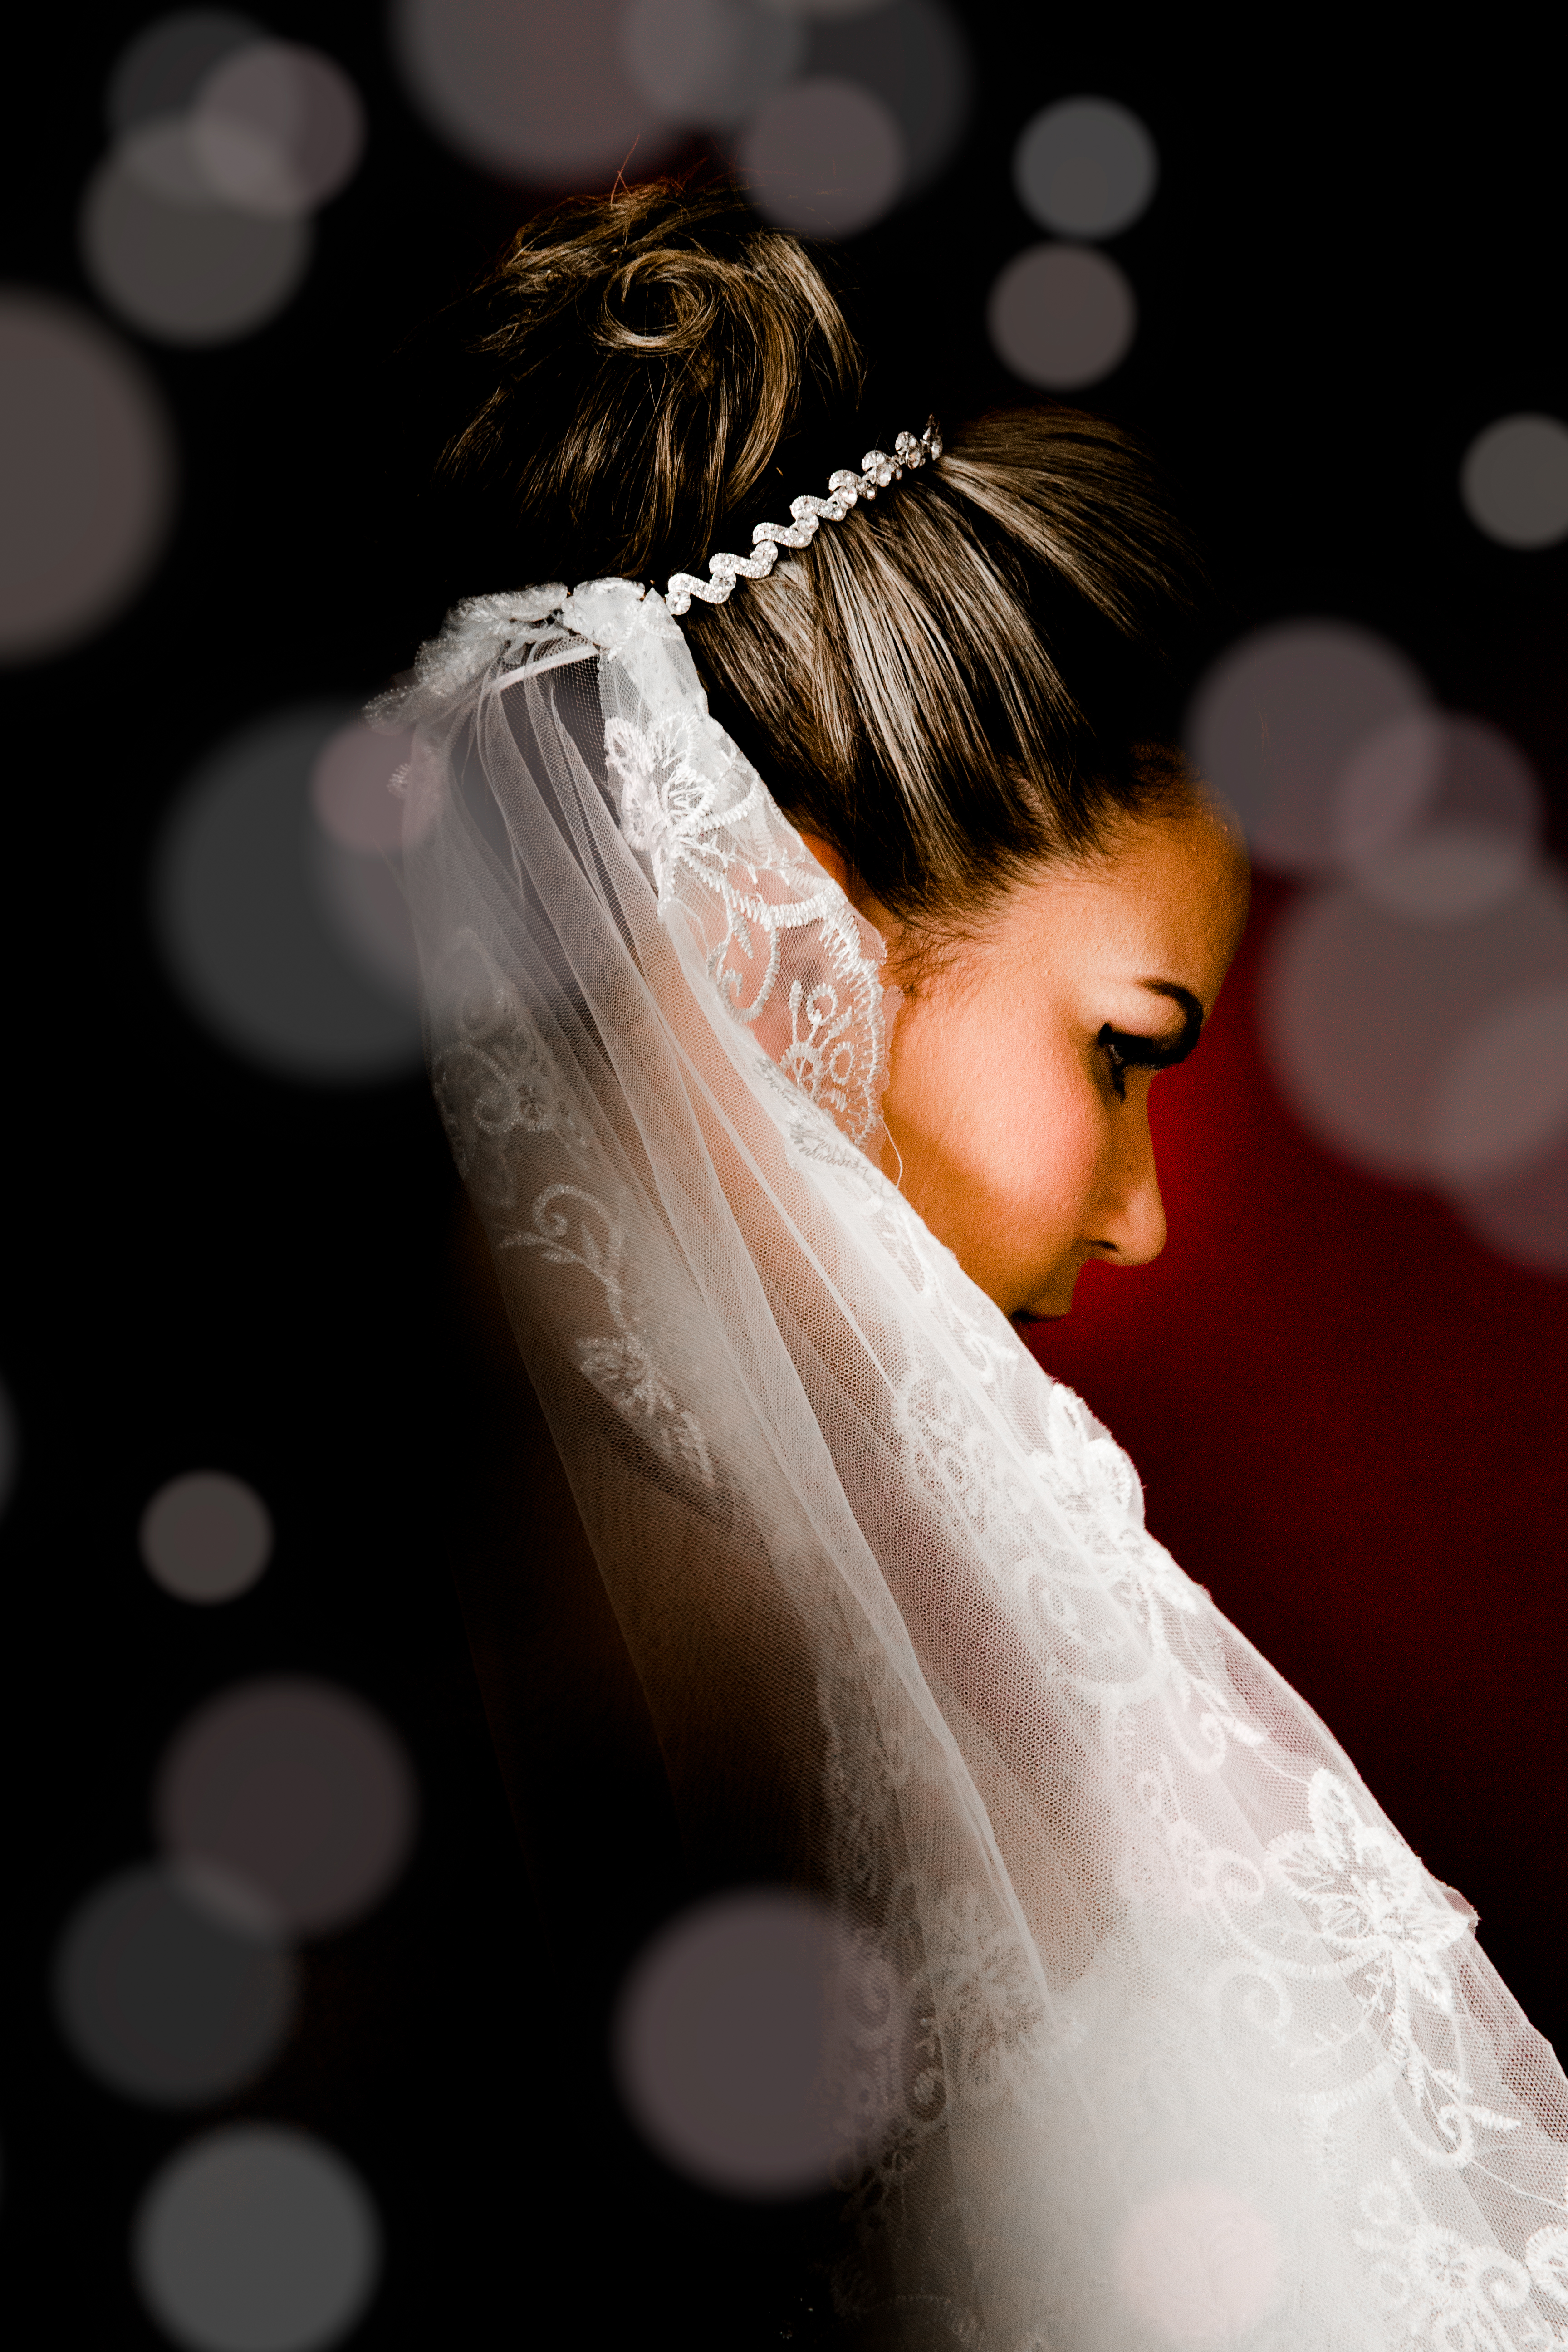 DMP - Wedding Photography & Video